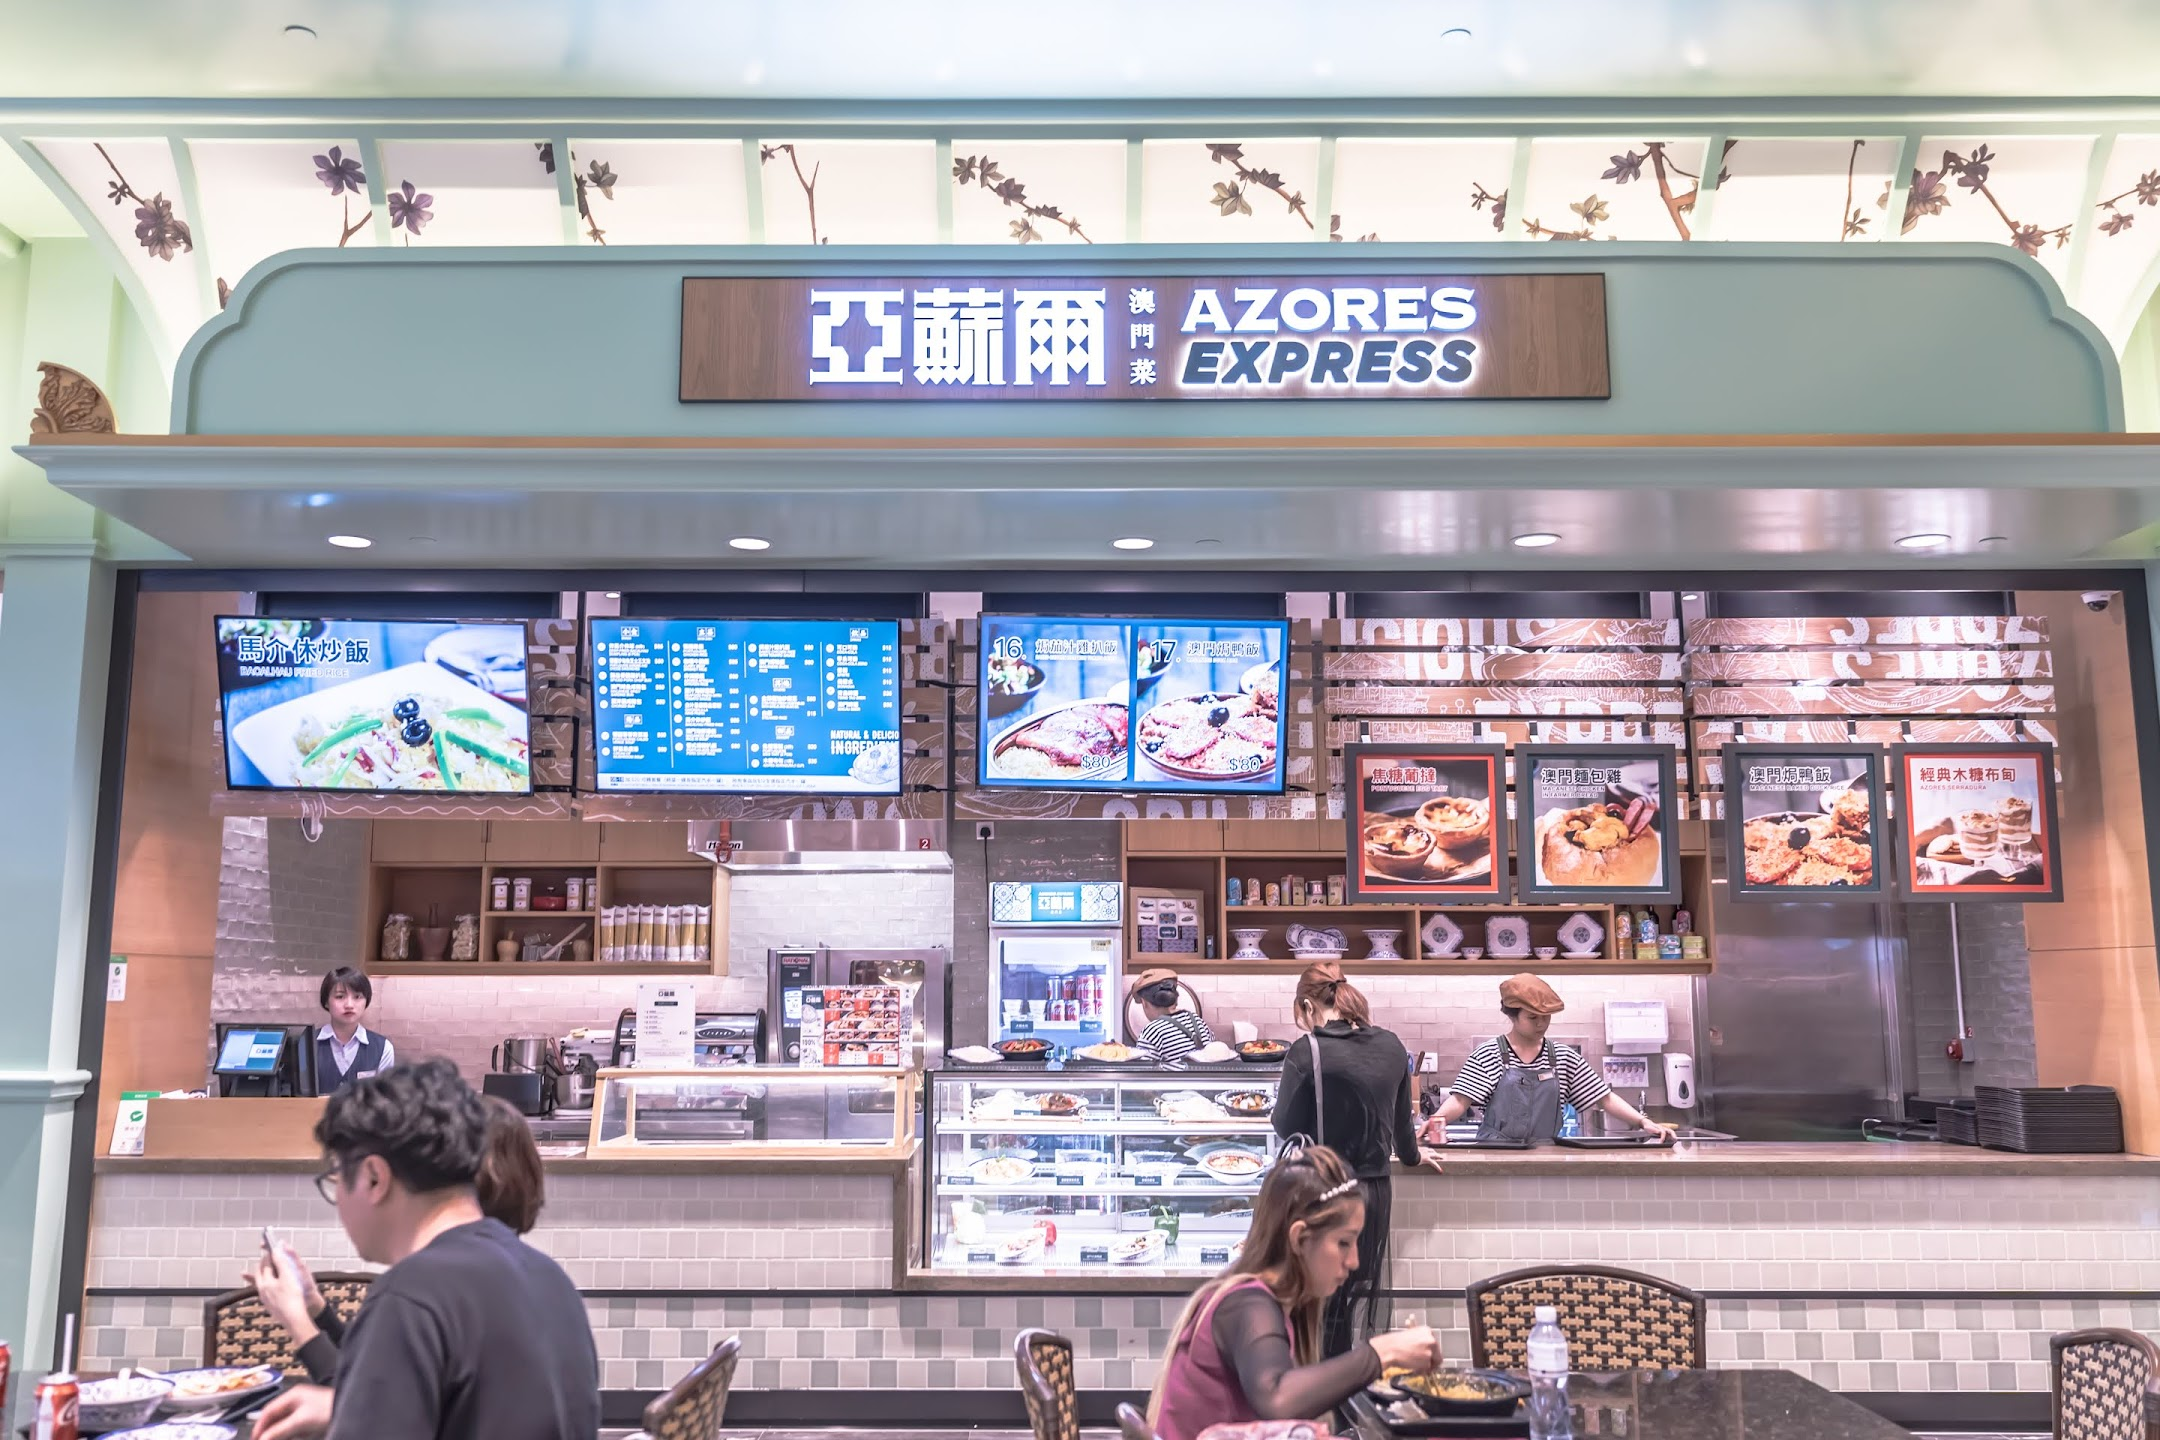 The Parisian Macao Food court